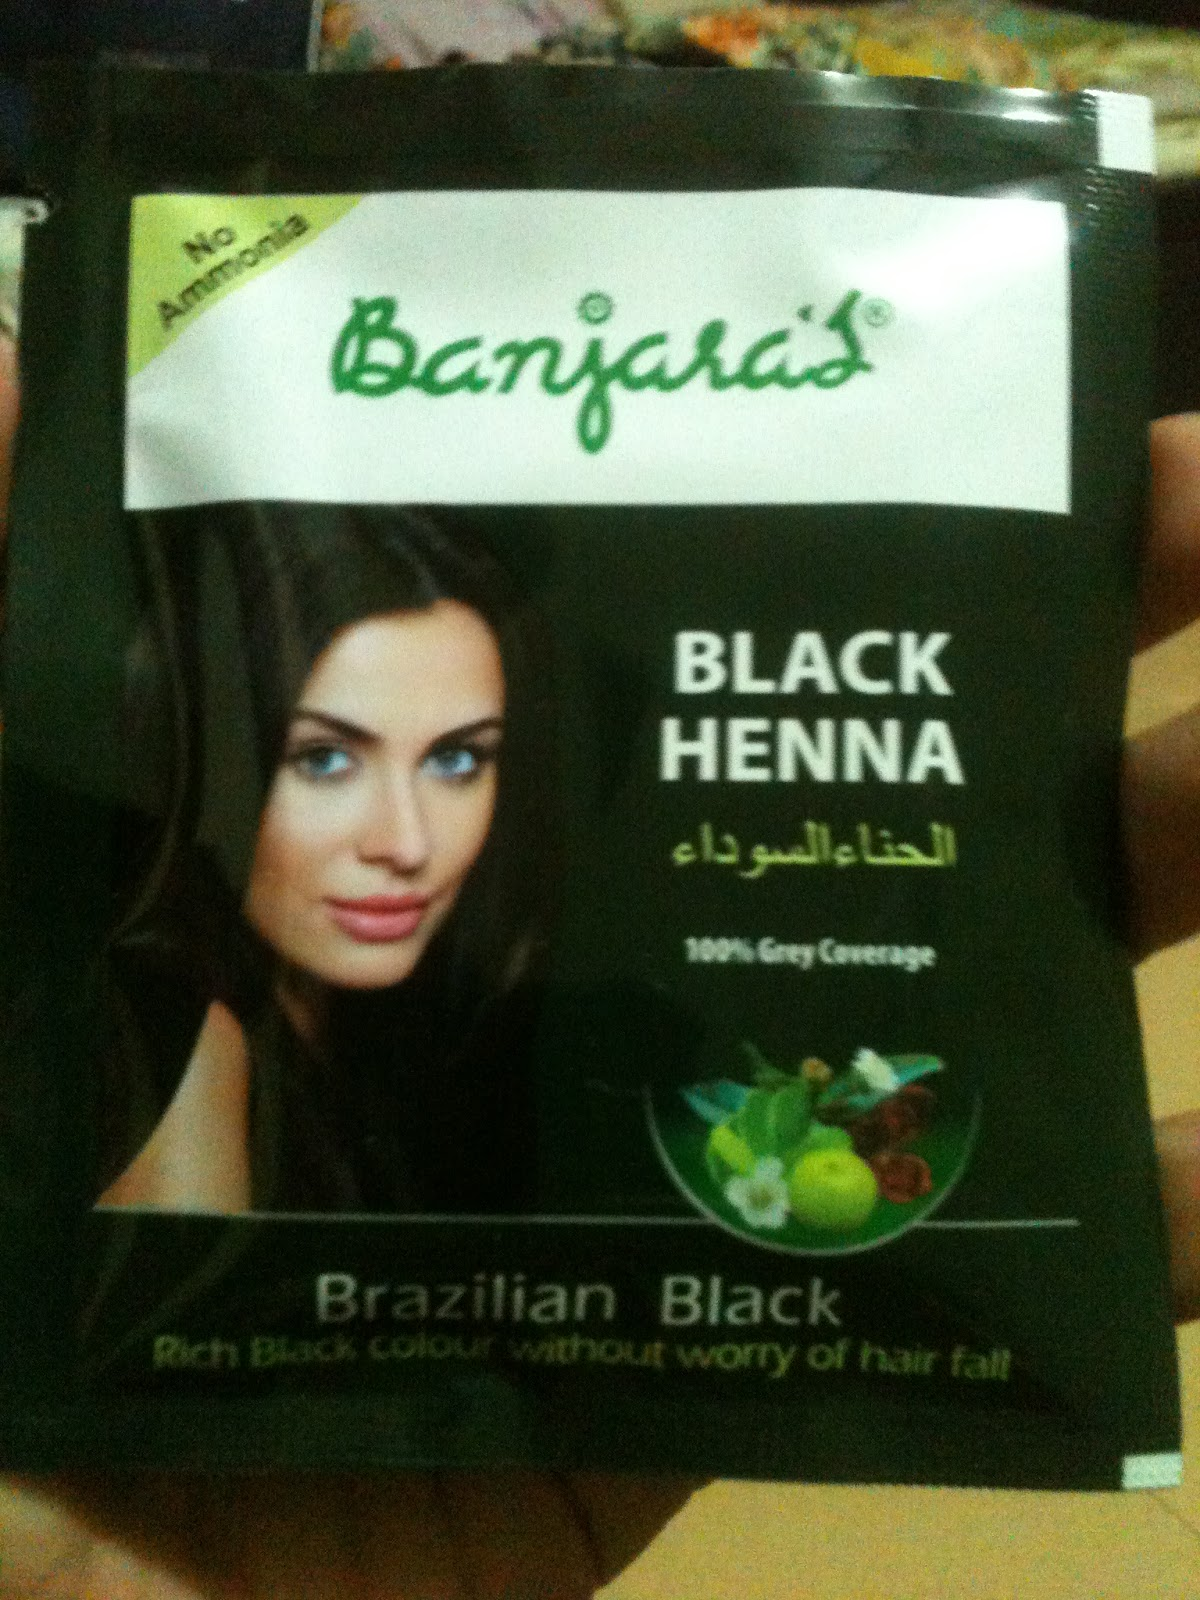 6a27fc33d Claims to give Black color that's very natural unlike other hair dye.